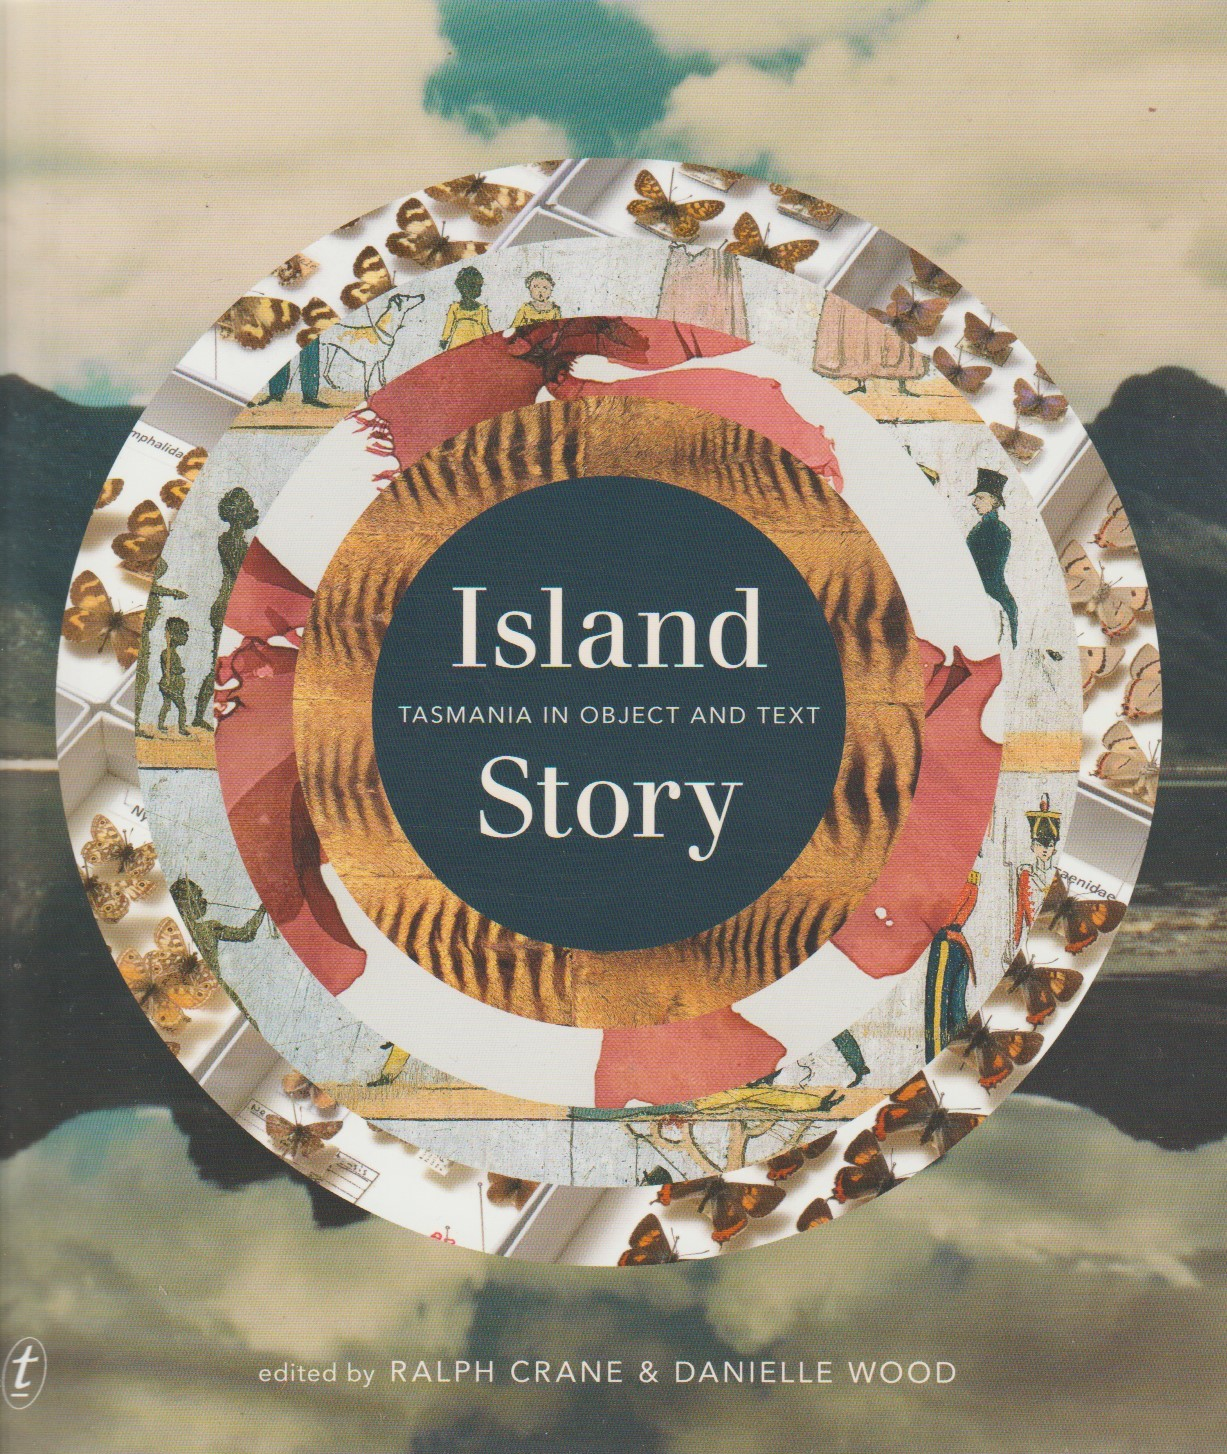 Island Story - Tasmania in Object and Text